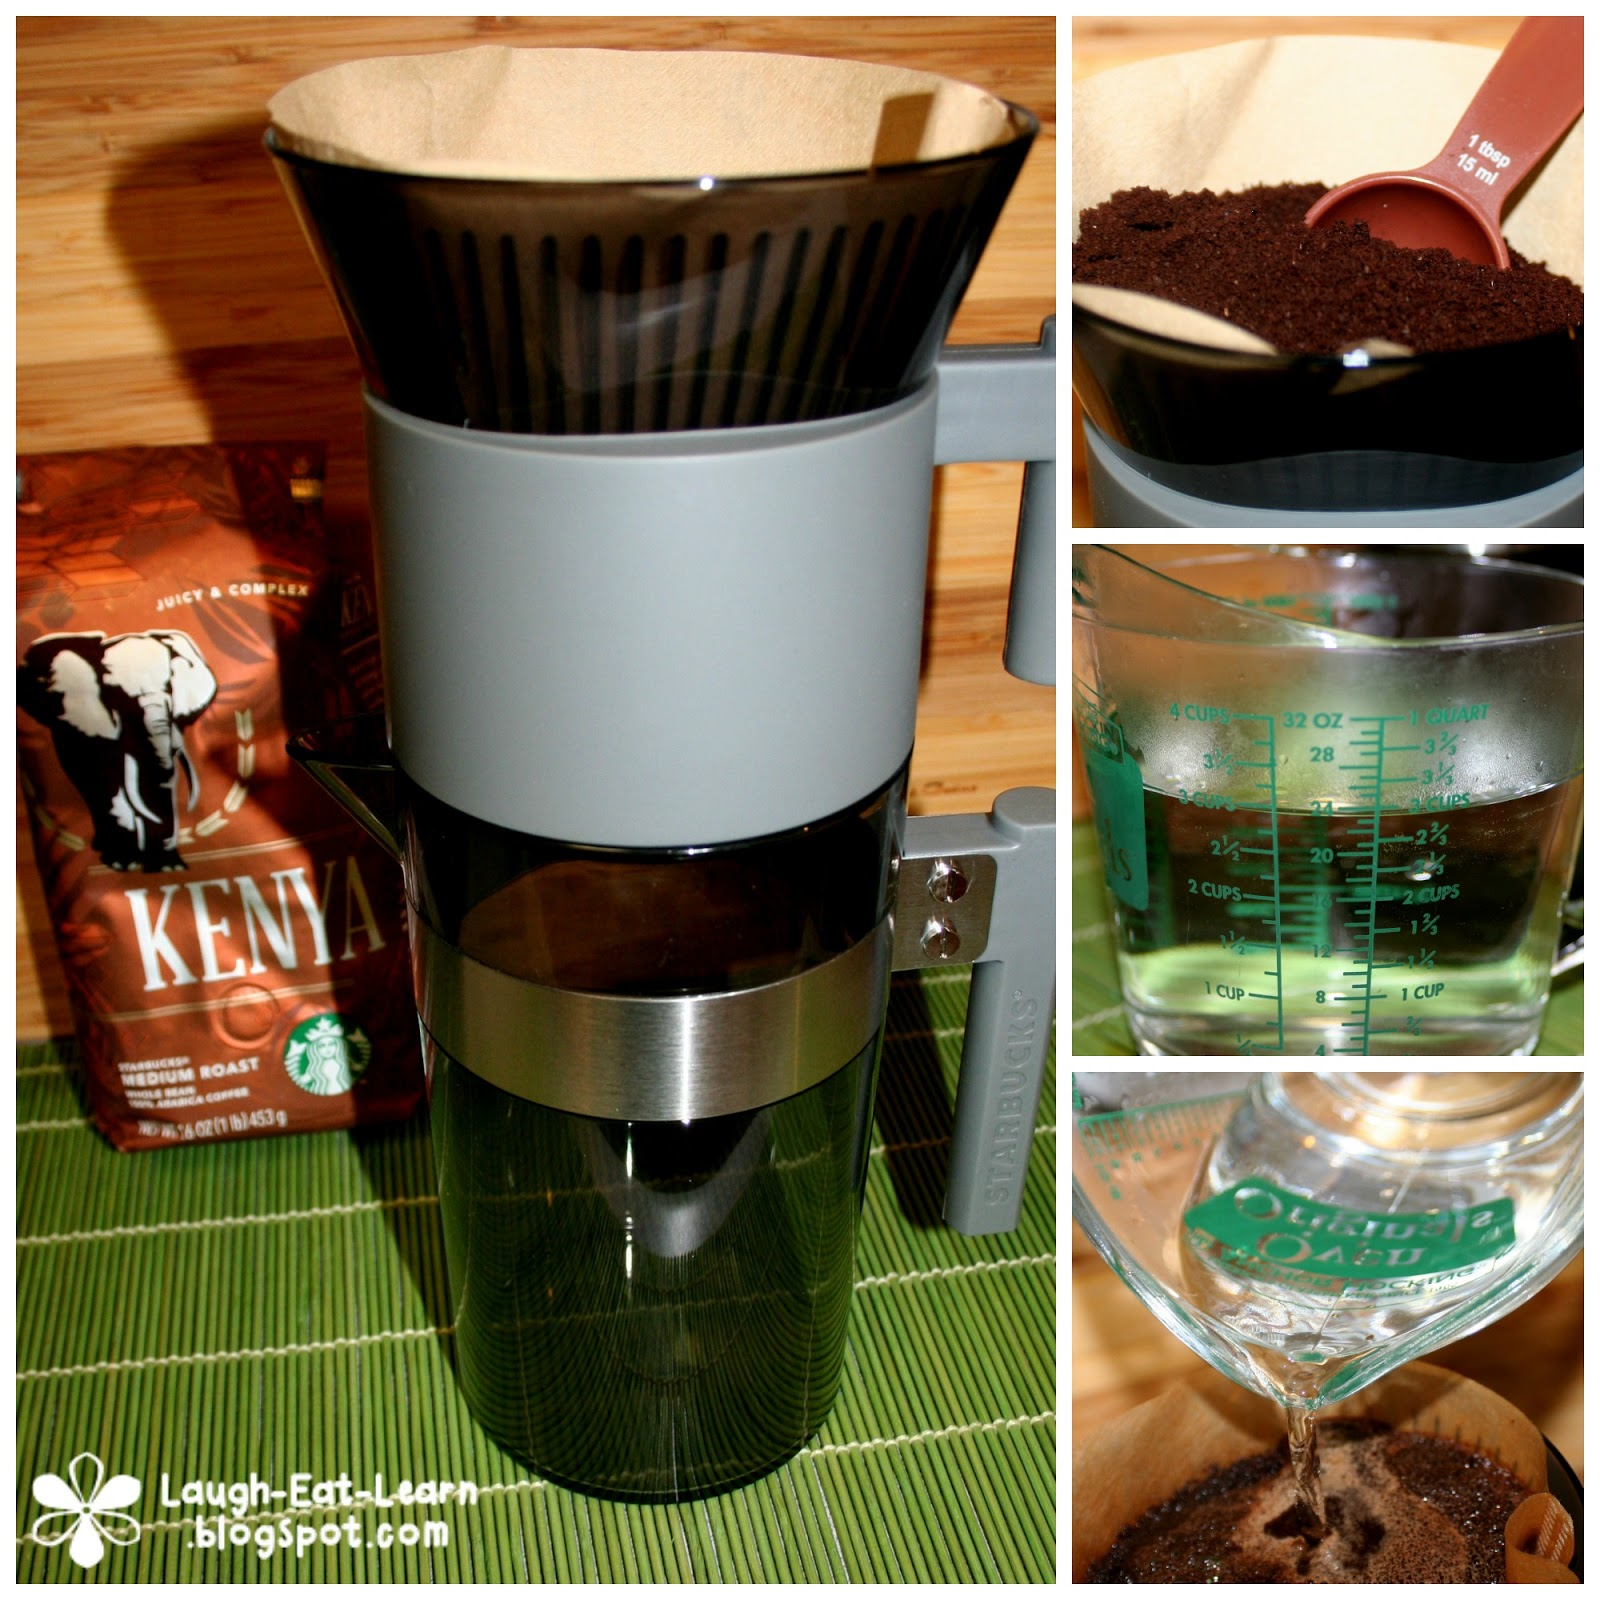 Unpacking Starbucks Iced Coffee Brewer - Laugh Eat Learn